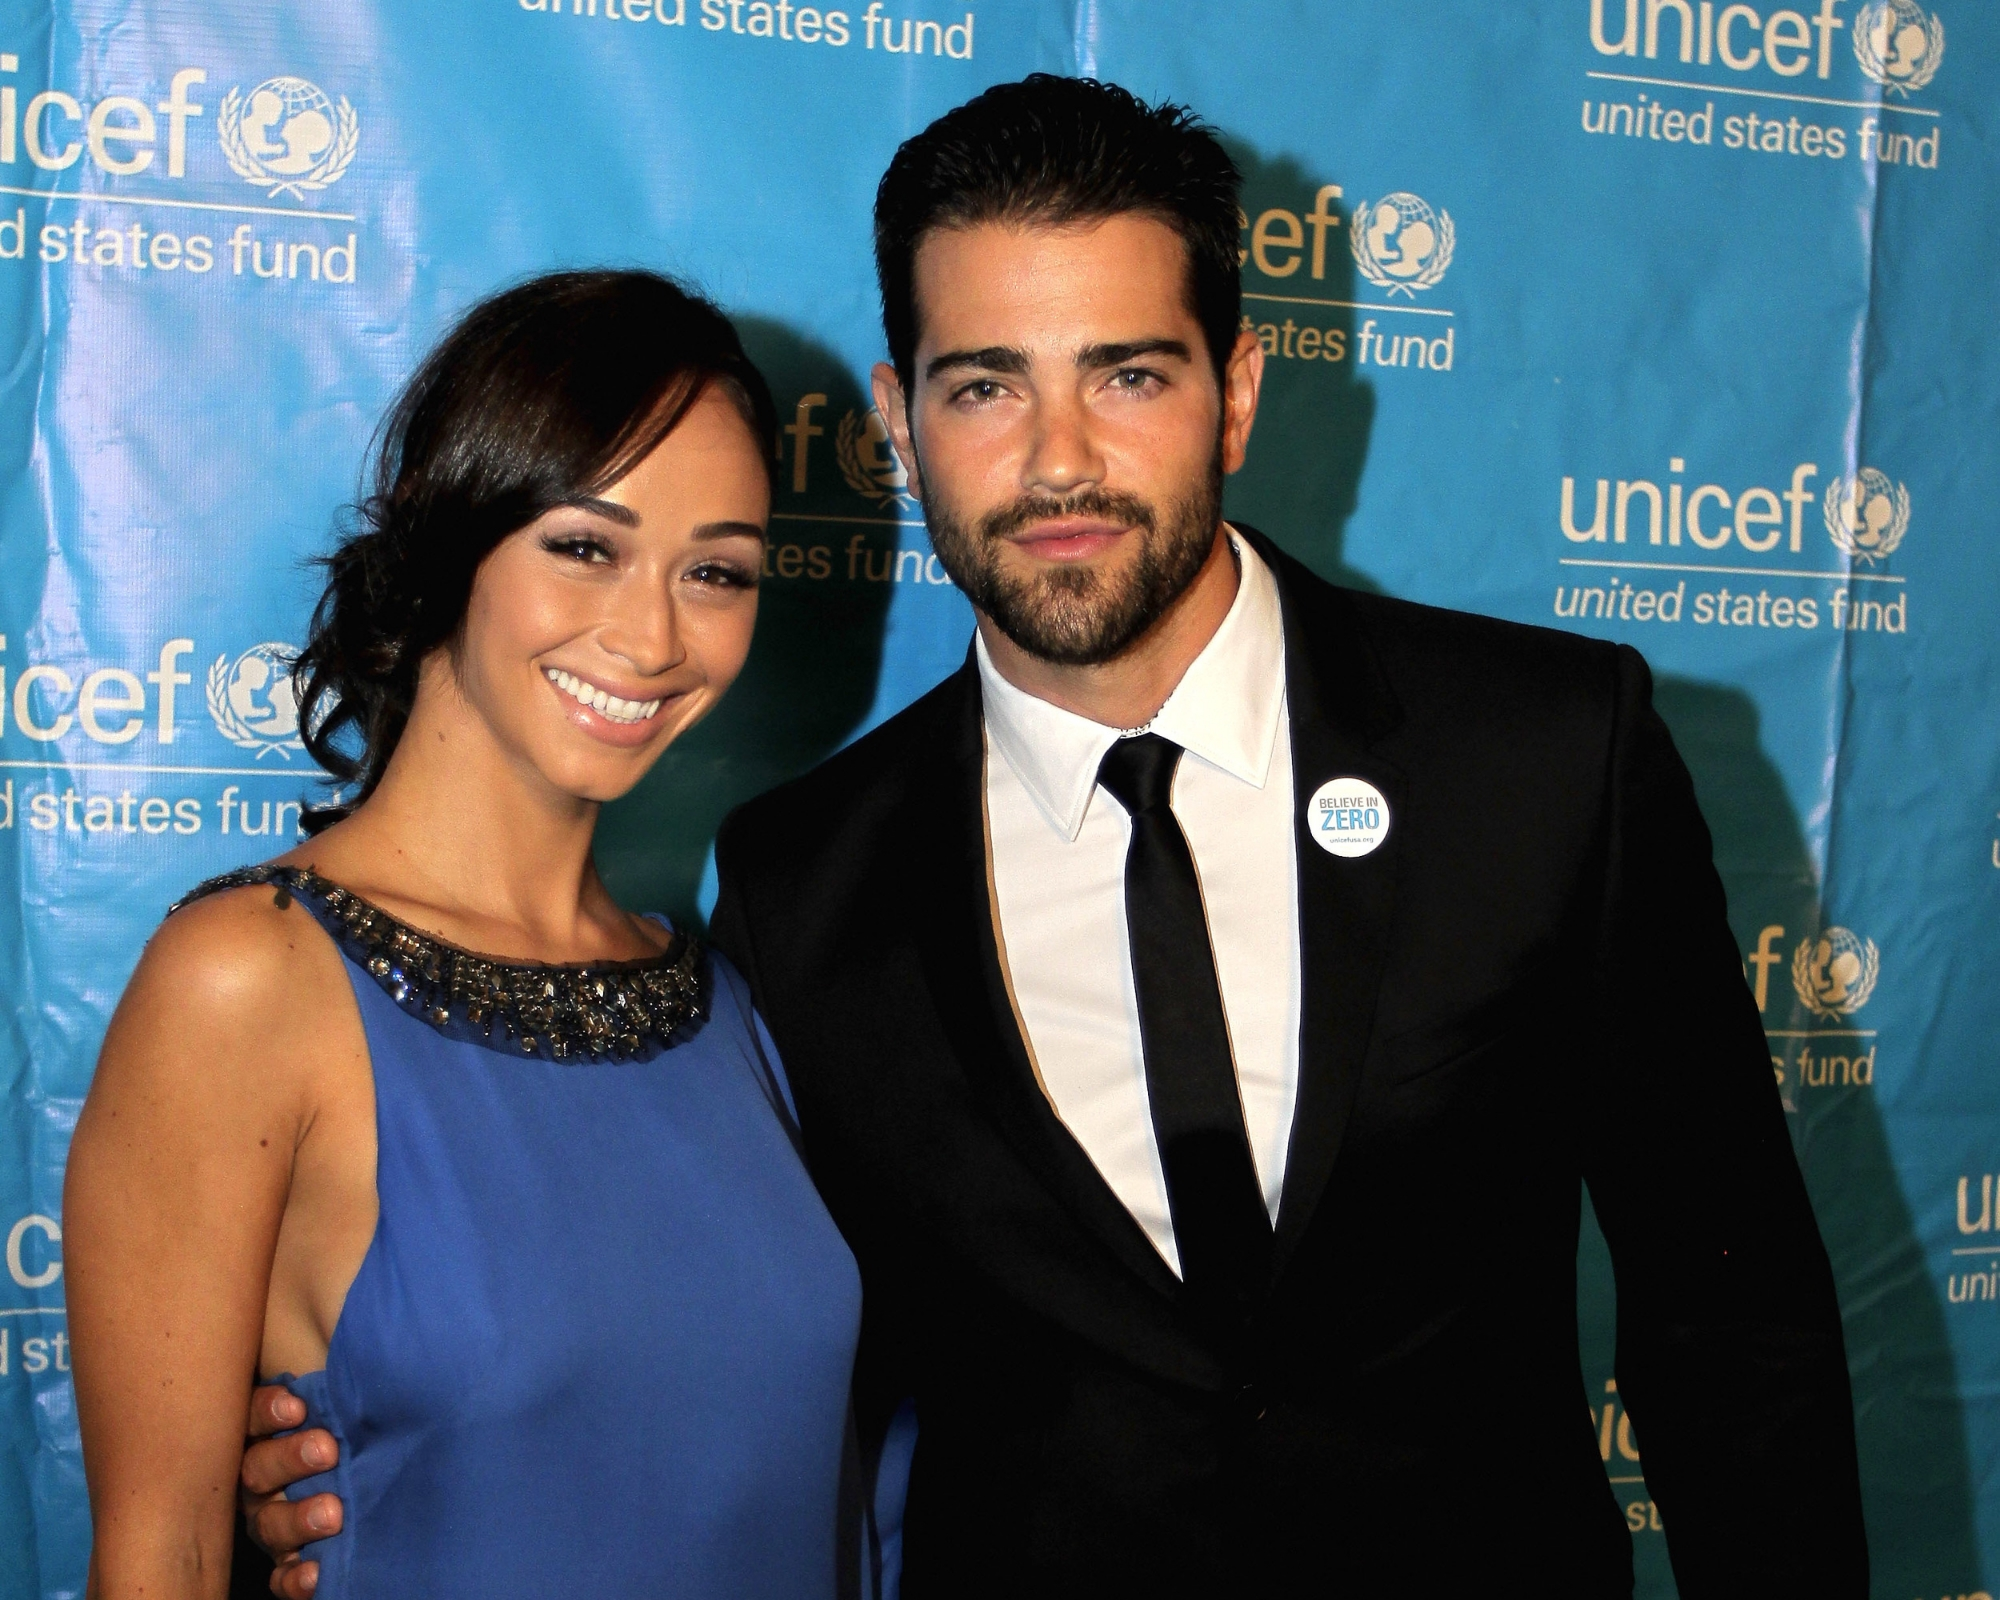 Jesse Metcalfe and Cara Santana attend The UNICEF Audrey Hepburn® Society Ball at Wortham Center on September 6, 2013 in Houston, Texas. (Photo by Bob Levey/Getty Images for UNICEF)